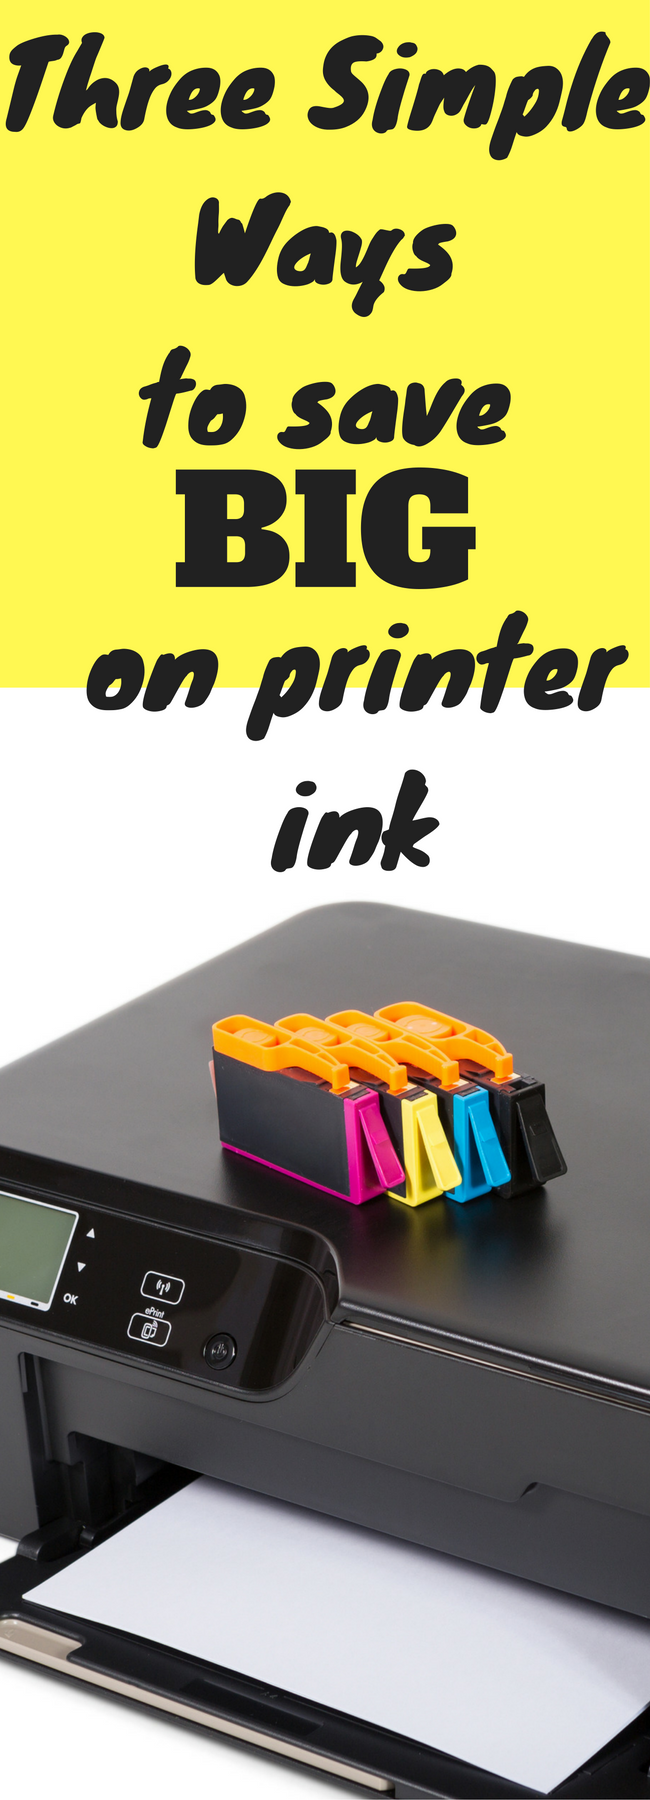 Ways to save on printer ink / save money / college tips / printer / printing paper / deals / saving money / frugal living